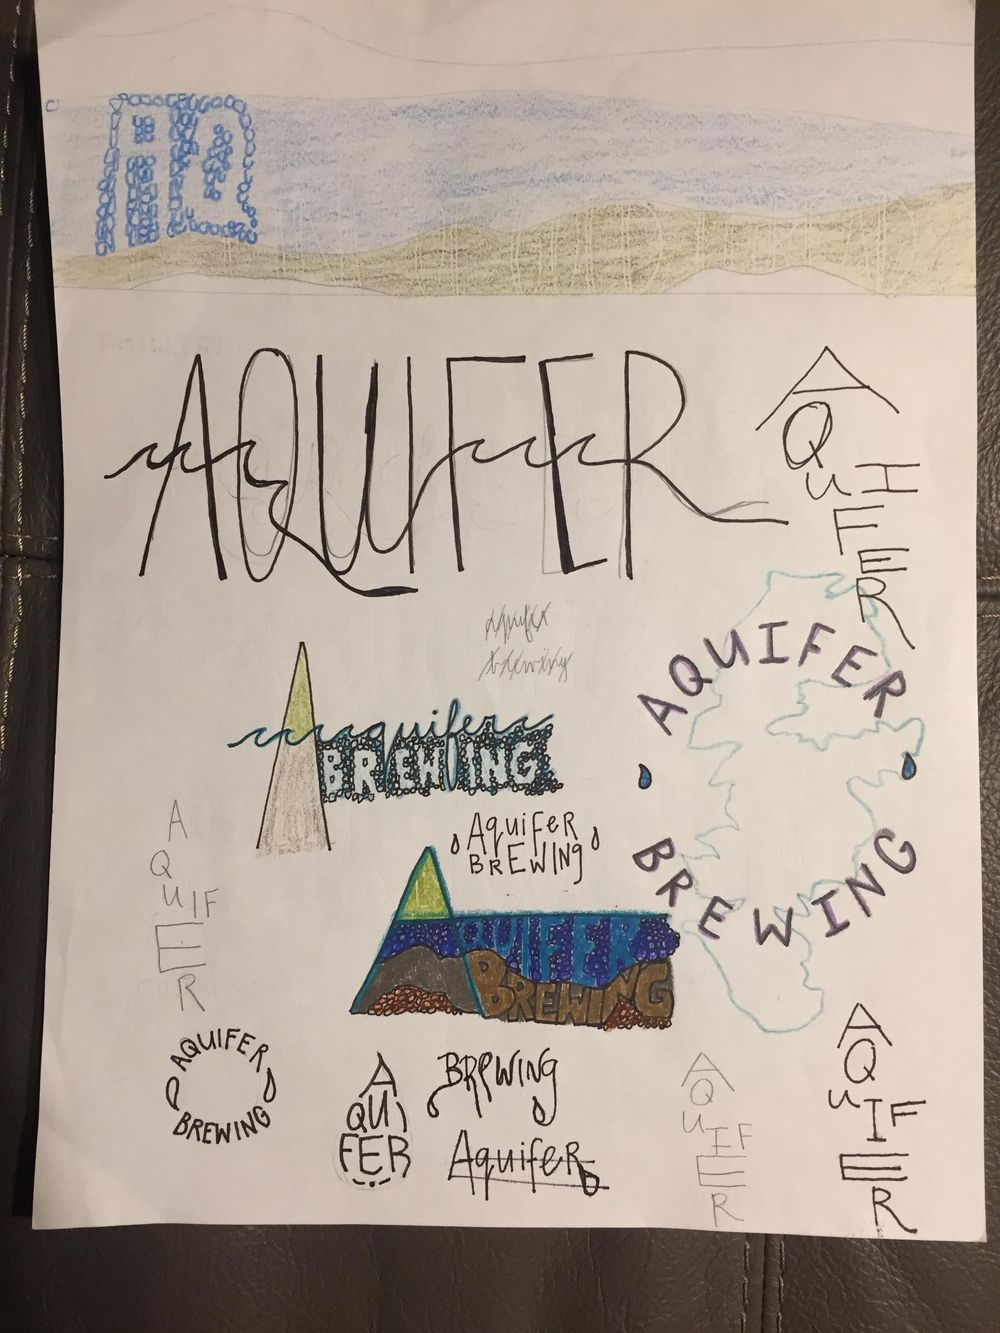 Aquifer Brewing - image 1 - student project